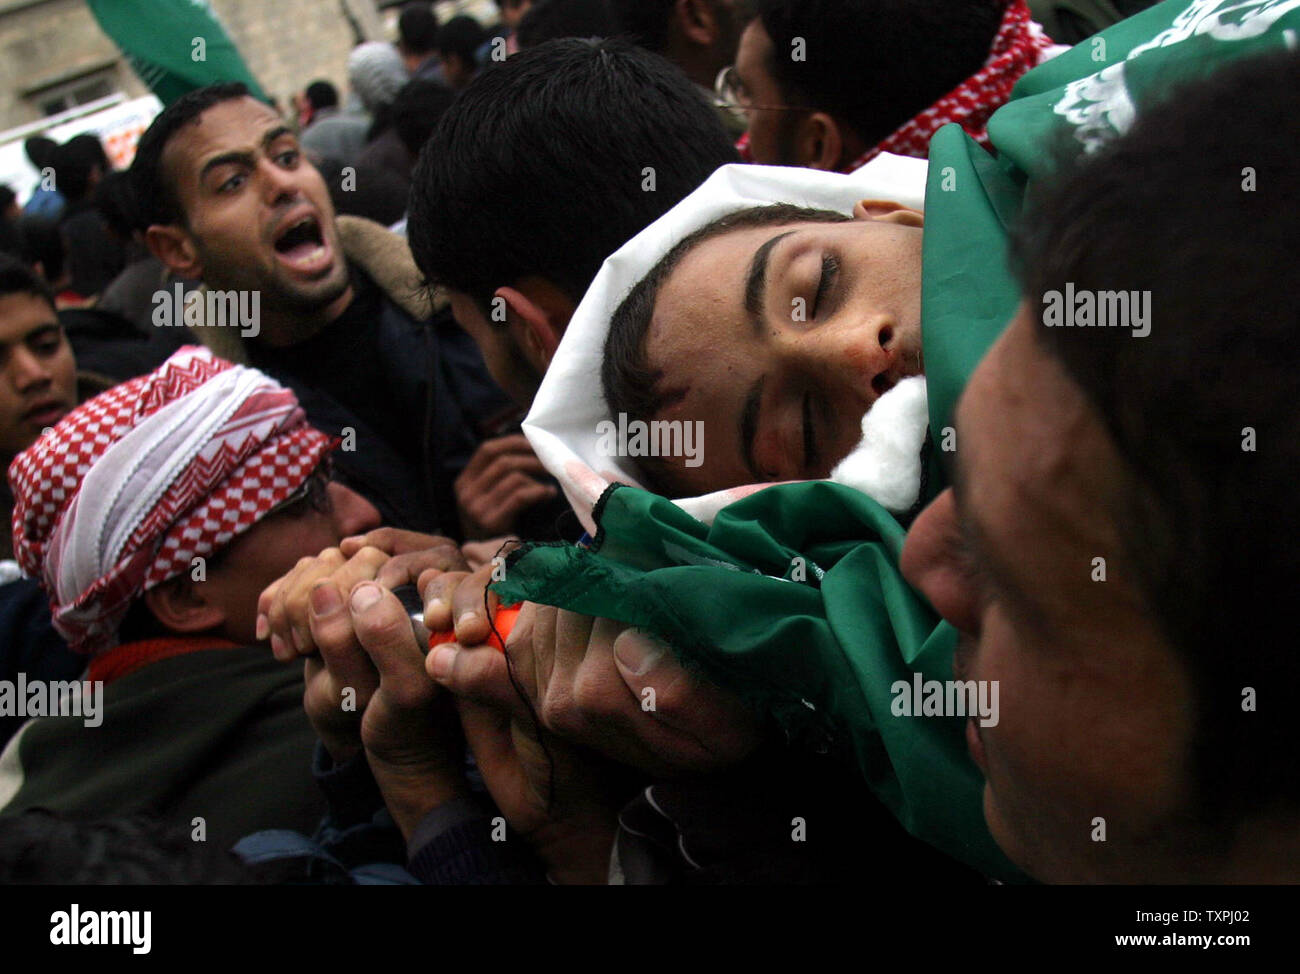 Relatives of 19 year-old Palestinian Jihad Abu Omar mourn during his funeral in the Khan Younis refugee camp in the Gaza Strip on December 18, 2004. According to Palestinian medical sources, Omar was the sixth Palestinian killed in camp since the start of a large-scale Israeli incursion.  (UPI Photo /Ismael Mohamad) - Stock Image